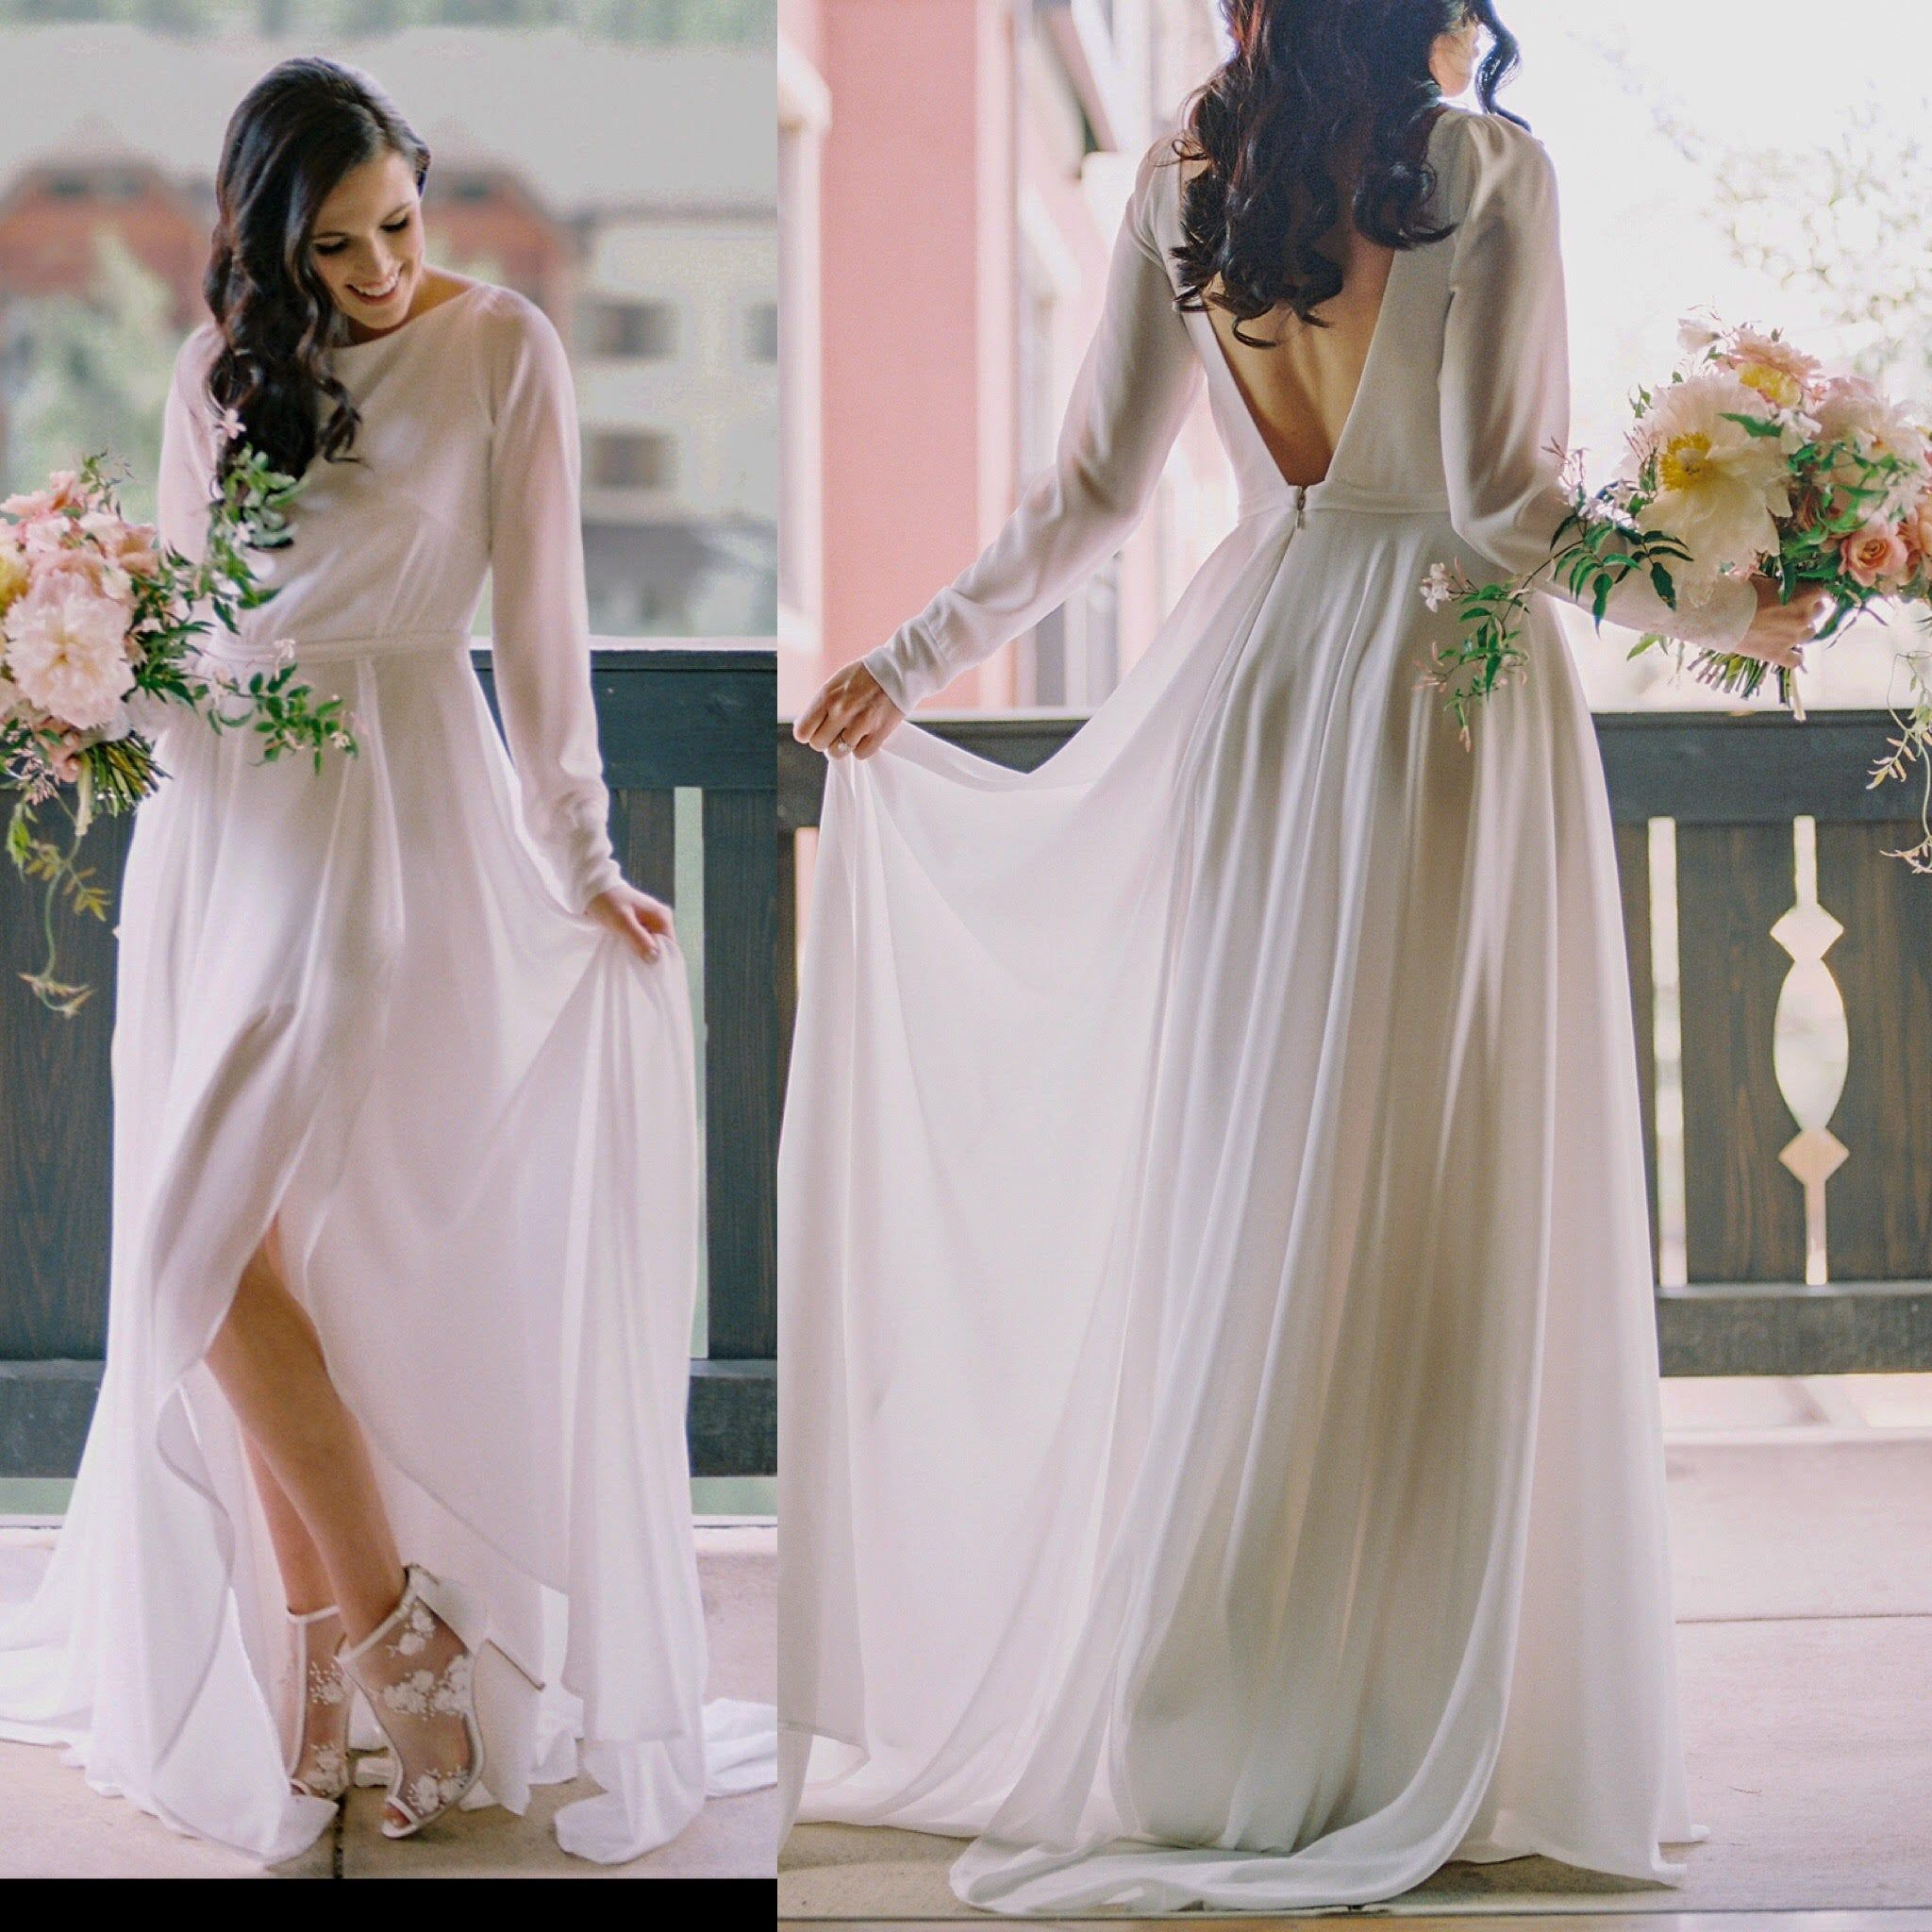 Chiffon Long Sleeve Wedding Dress with a Sexy Slit, Vintage Style, Low Back, off white, High Neck, Classic And Bohemian Bridal Gown